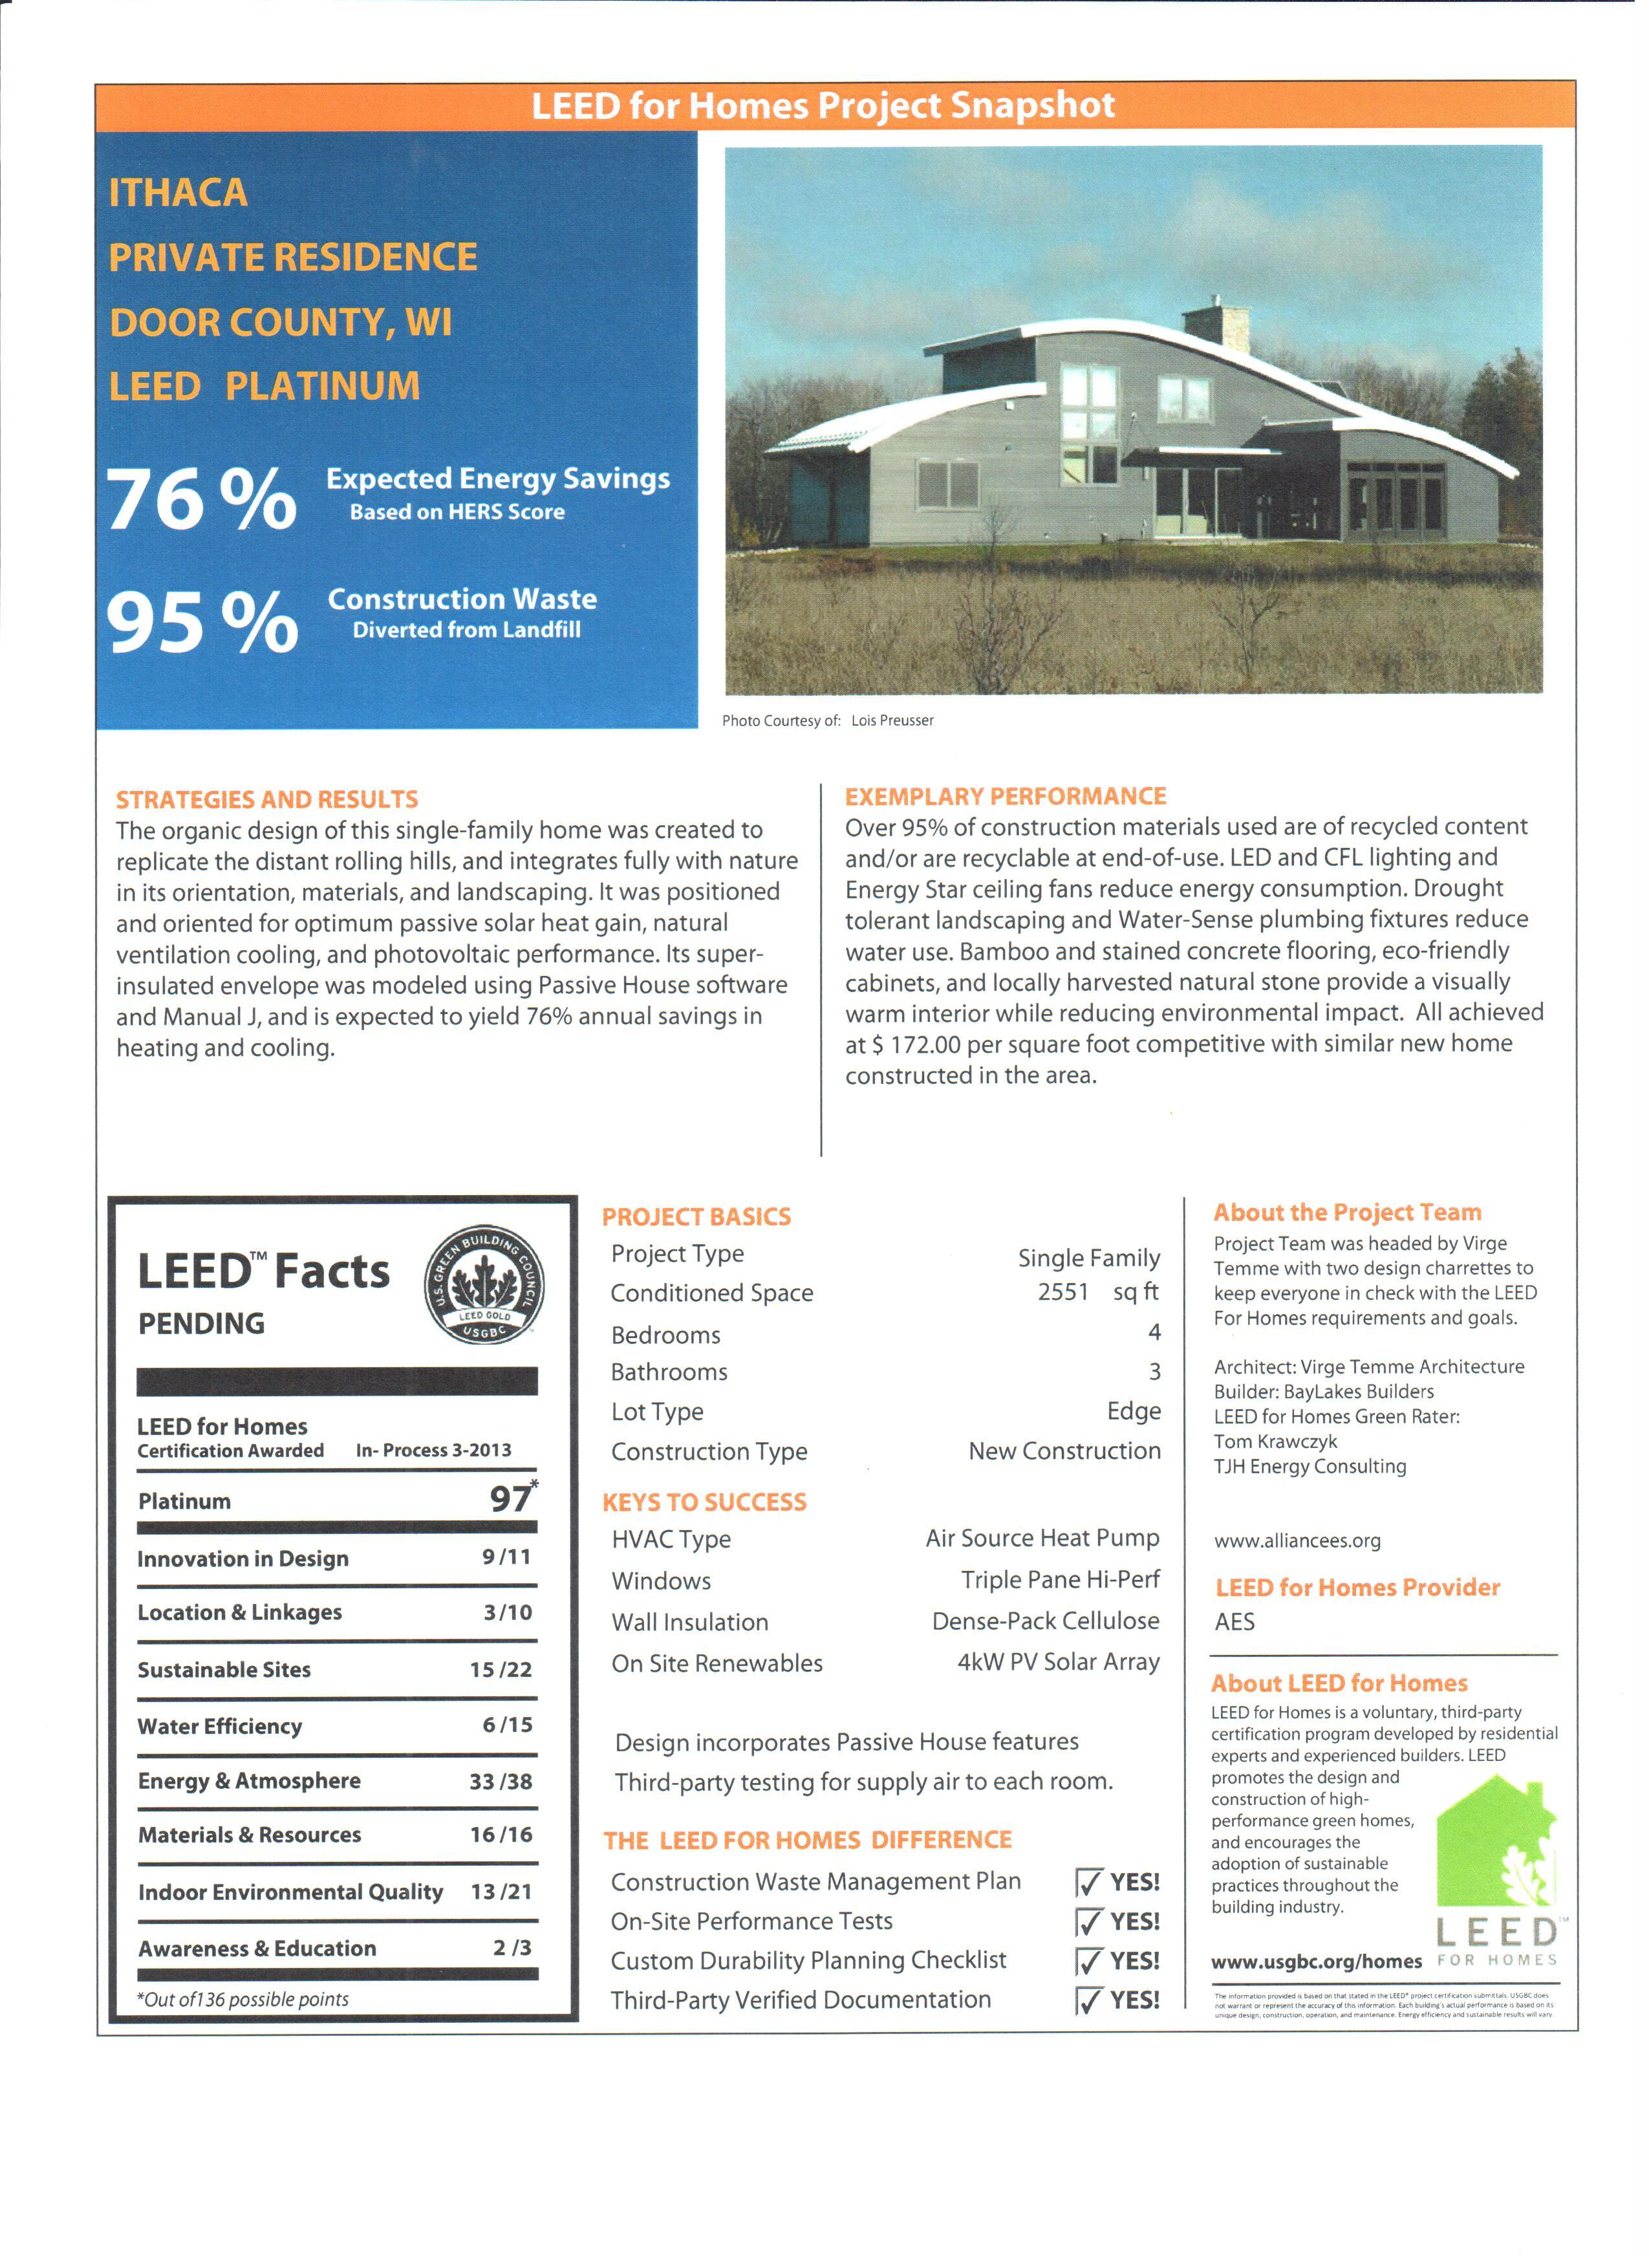 Ithaca A Leed For Homes Timeline Virge Temme Architecture